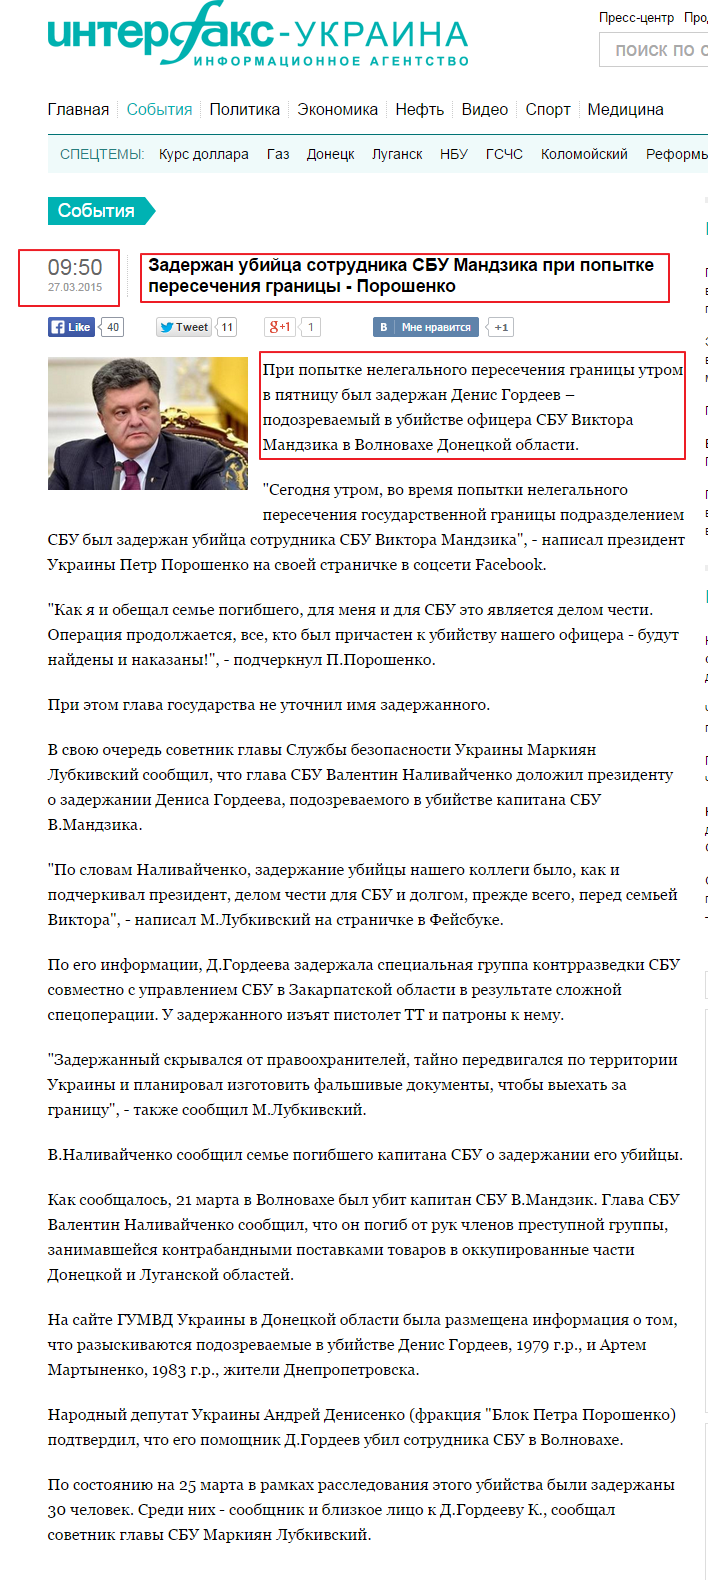 http://interfax.com.ua/news/general/257337.html